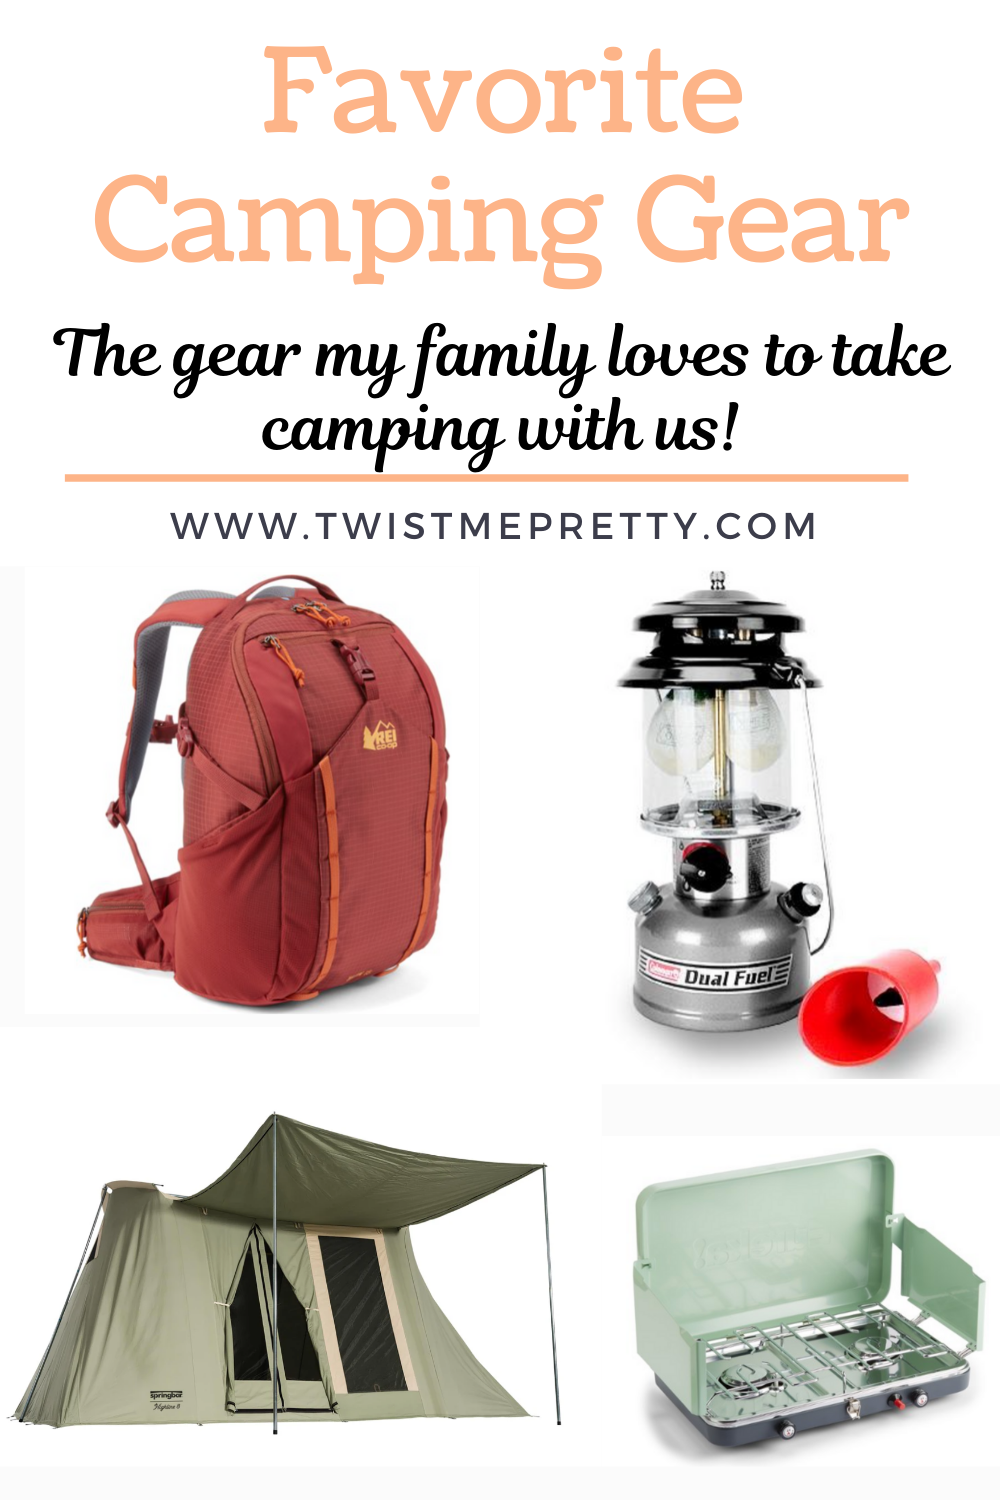 Favorite camping gear. The gear my family loves to take camping with us. www.twistmepretty.com